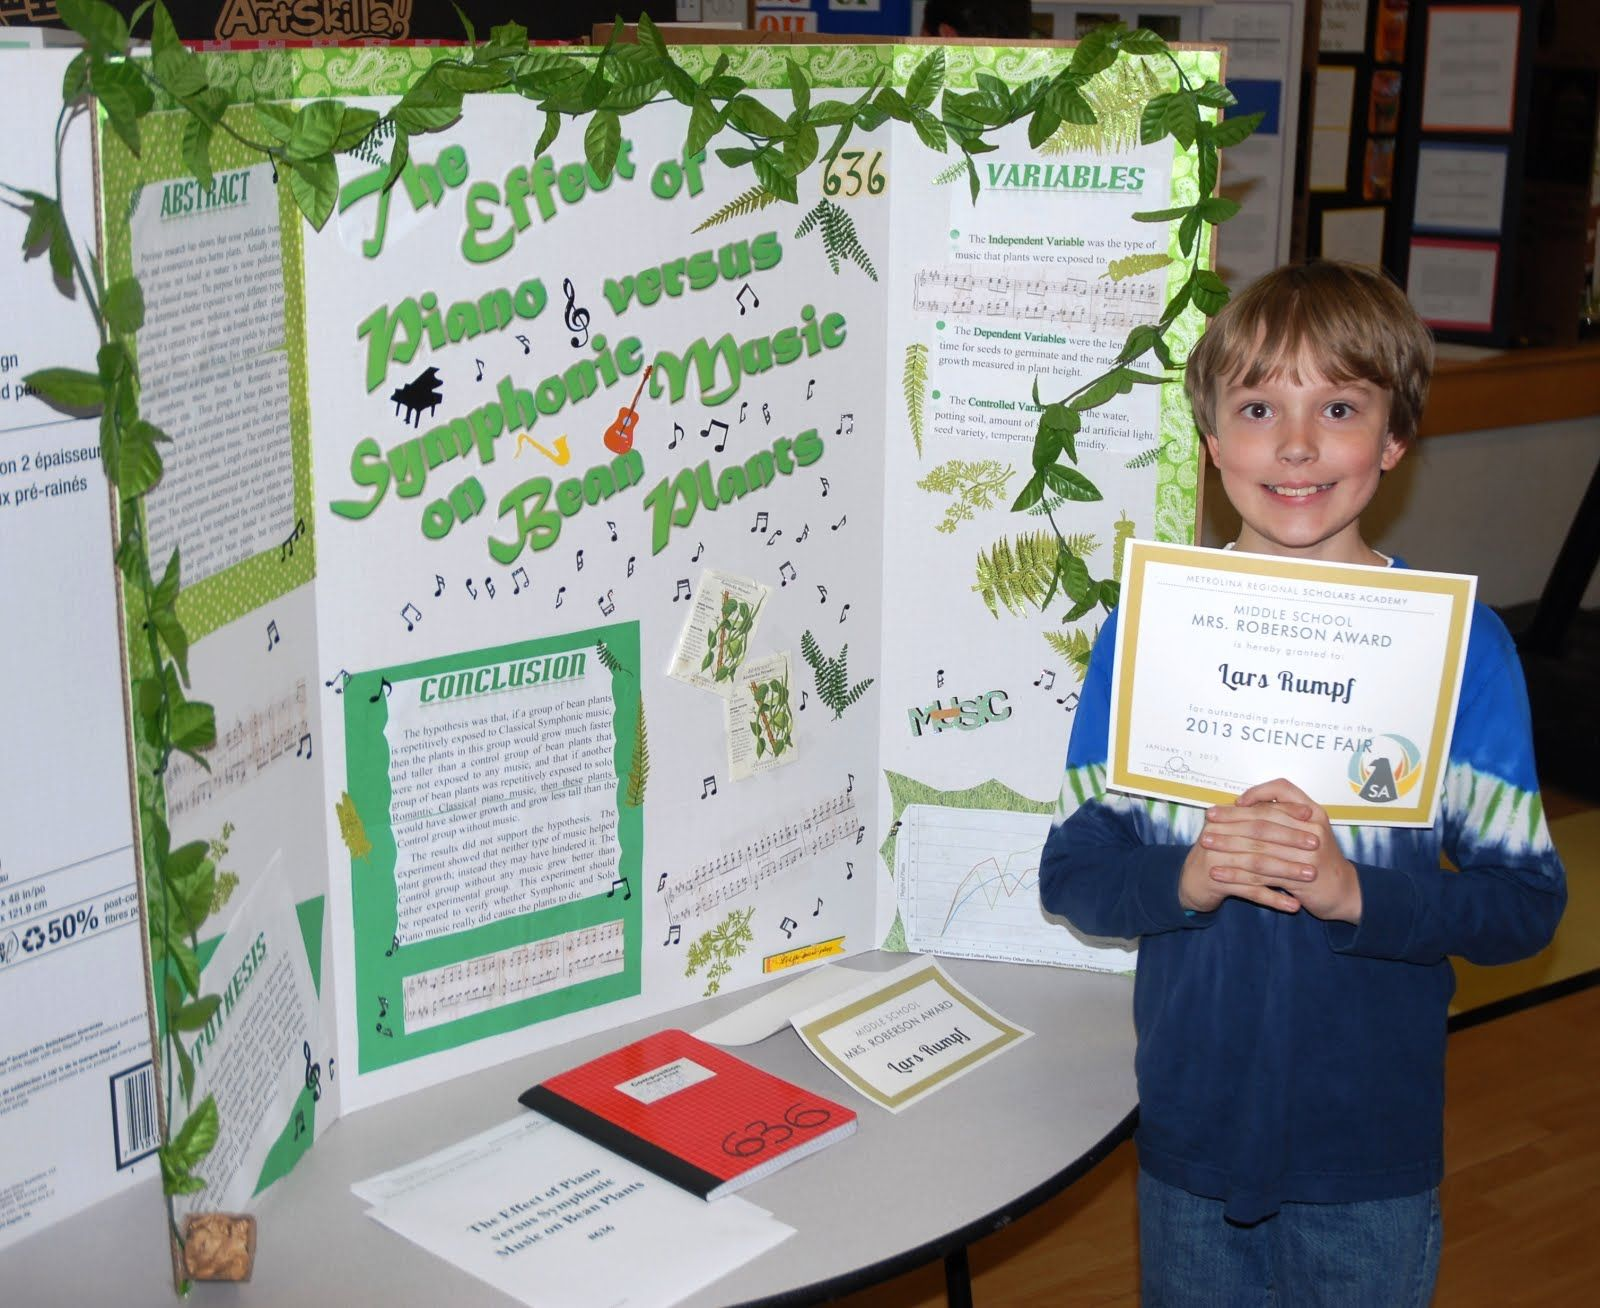 award winning 6th grade science fair projects Library media center science fair project resources sixth grade ancient civilizations museum 100 award-winning science fair projects by vecchione.